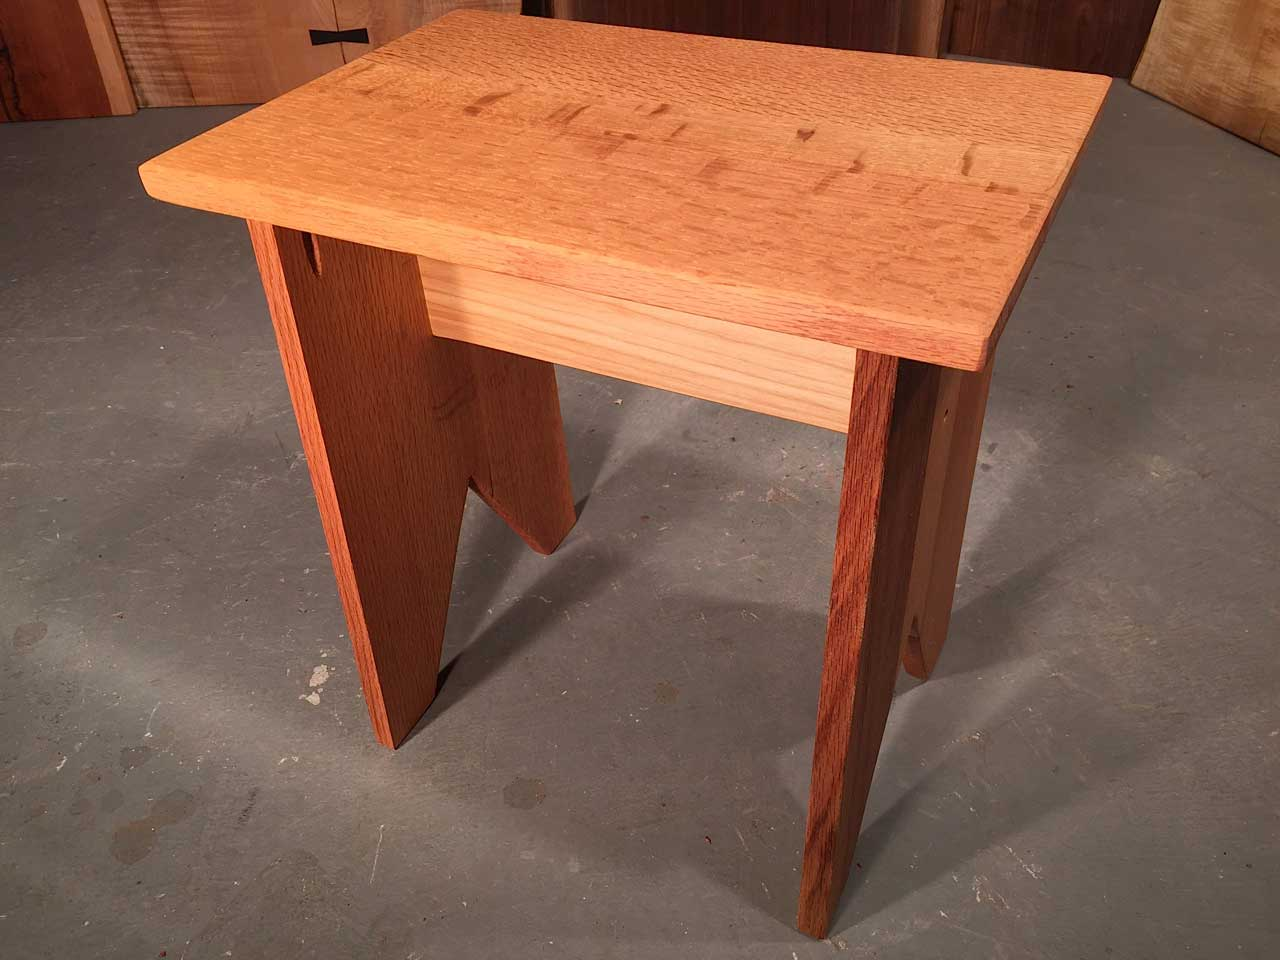 Quarter Sawn Oak Top With Solid Oak Legs